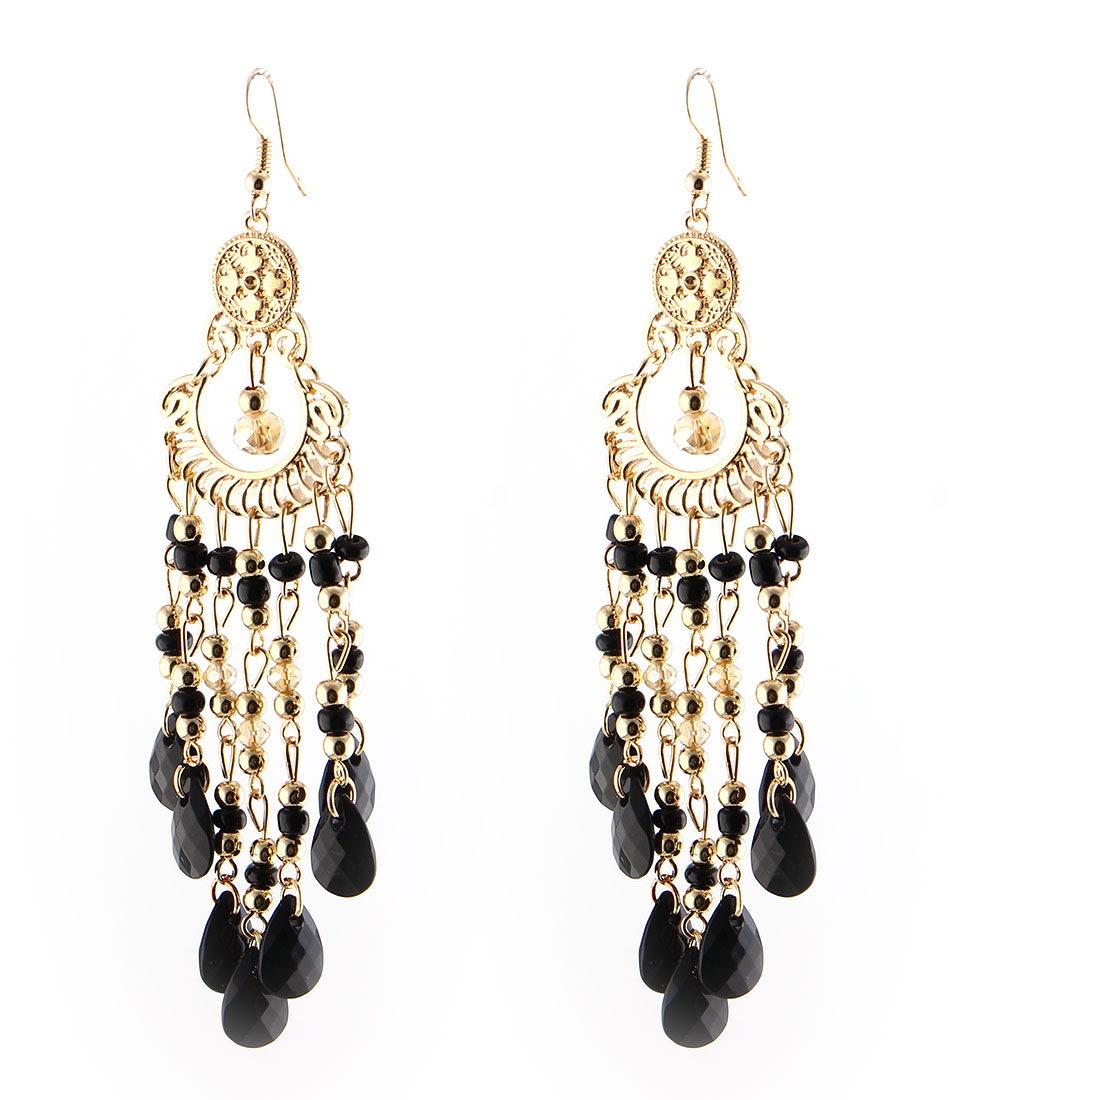 Women Ladies Fish Hook Beads Decor Dangling Pendant Earrings Black Pair